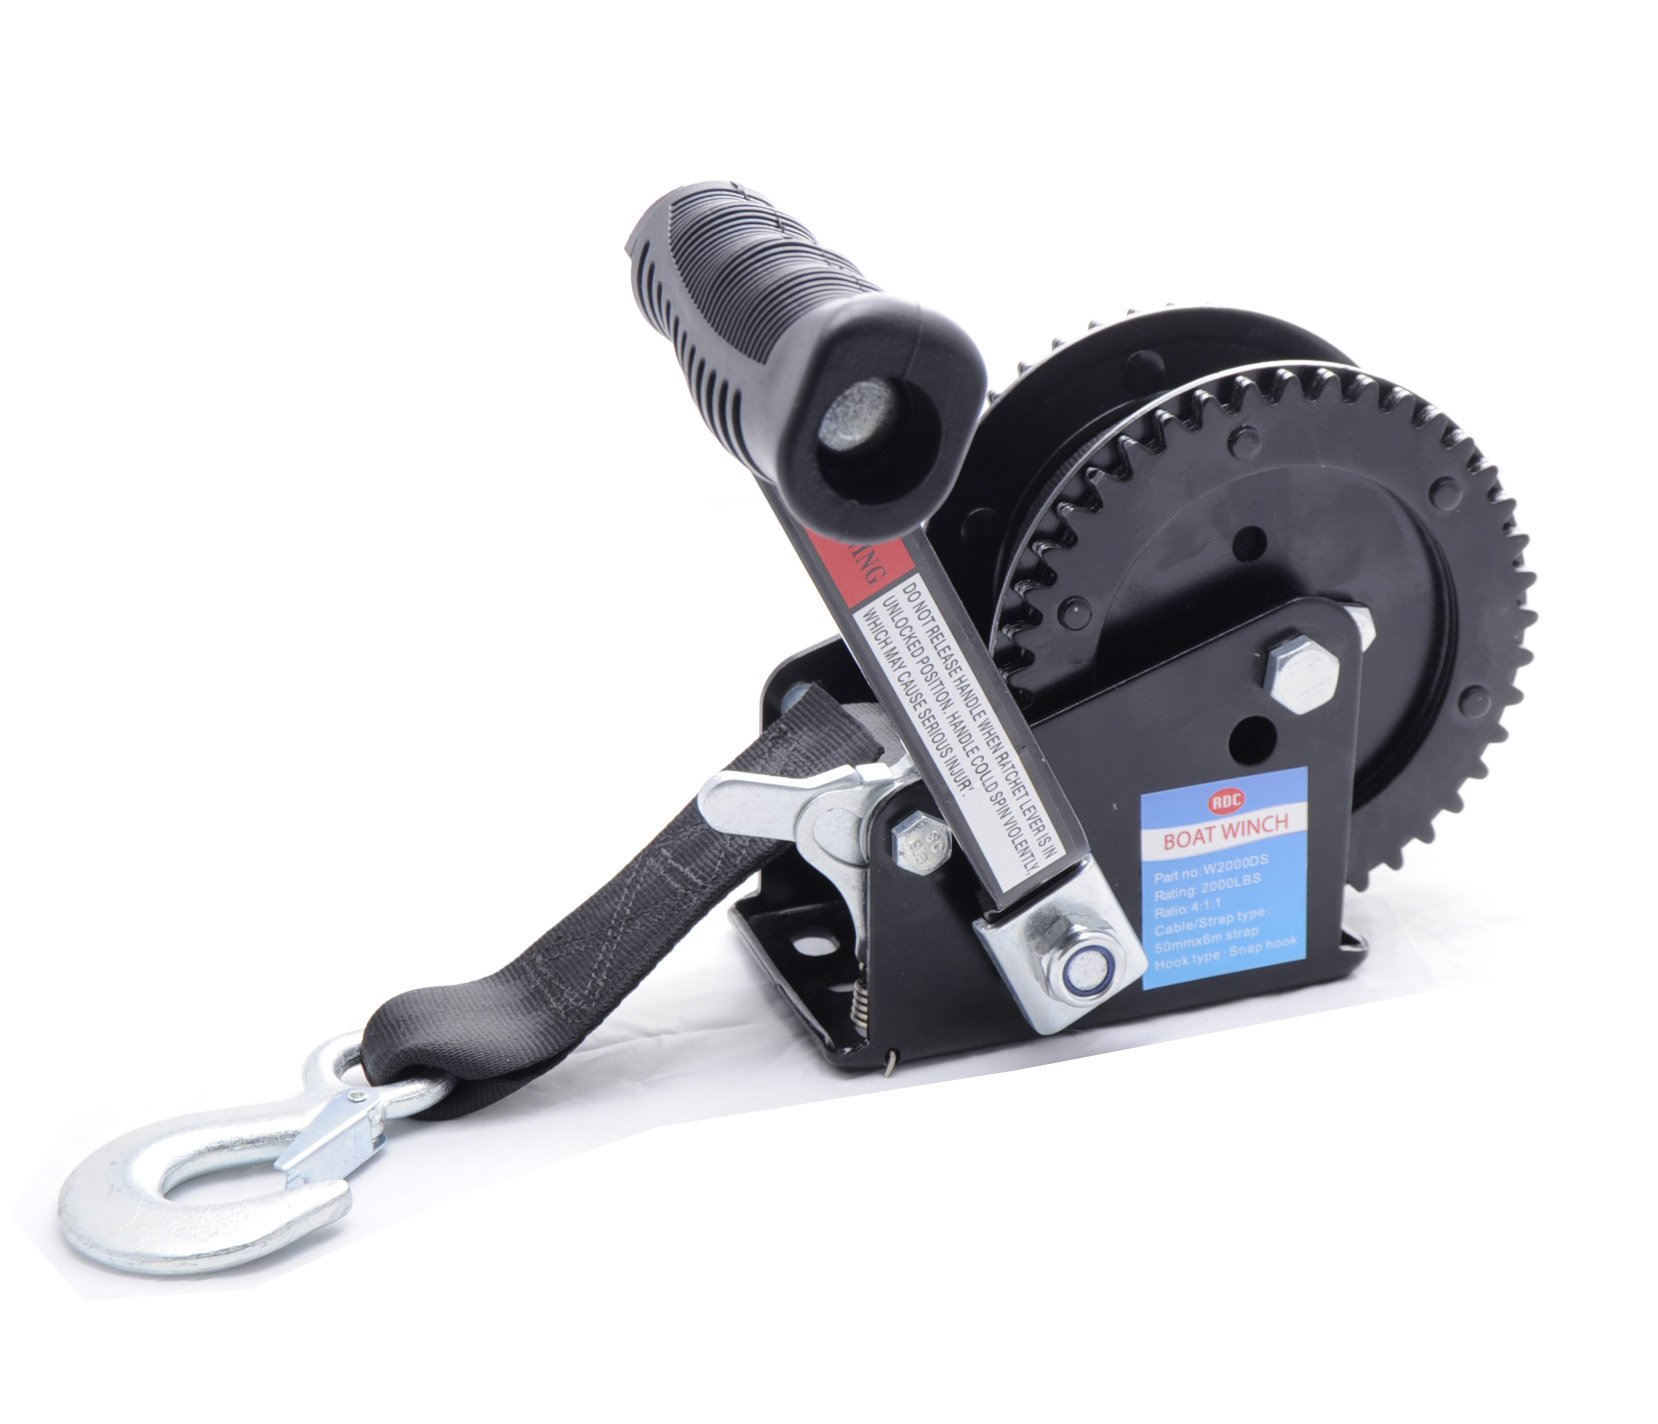 Trailer Winch 2000LB EDC Coated Black Dual Drive Winch with 25-Foot Strap  by Trailer Winch